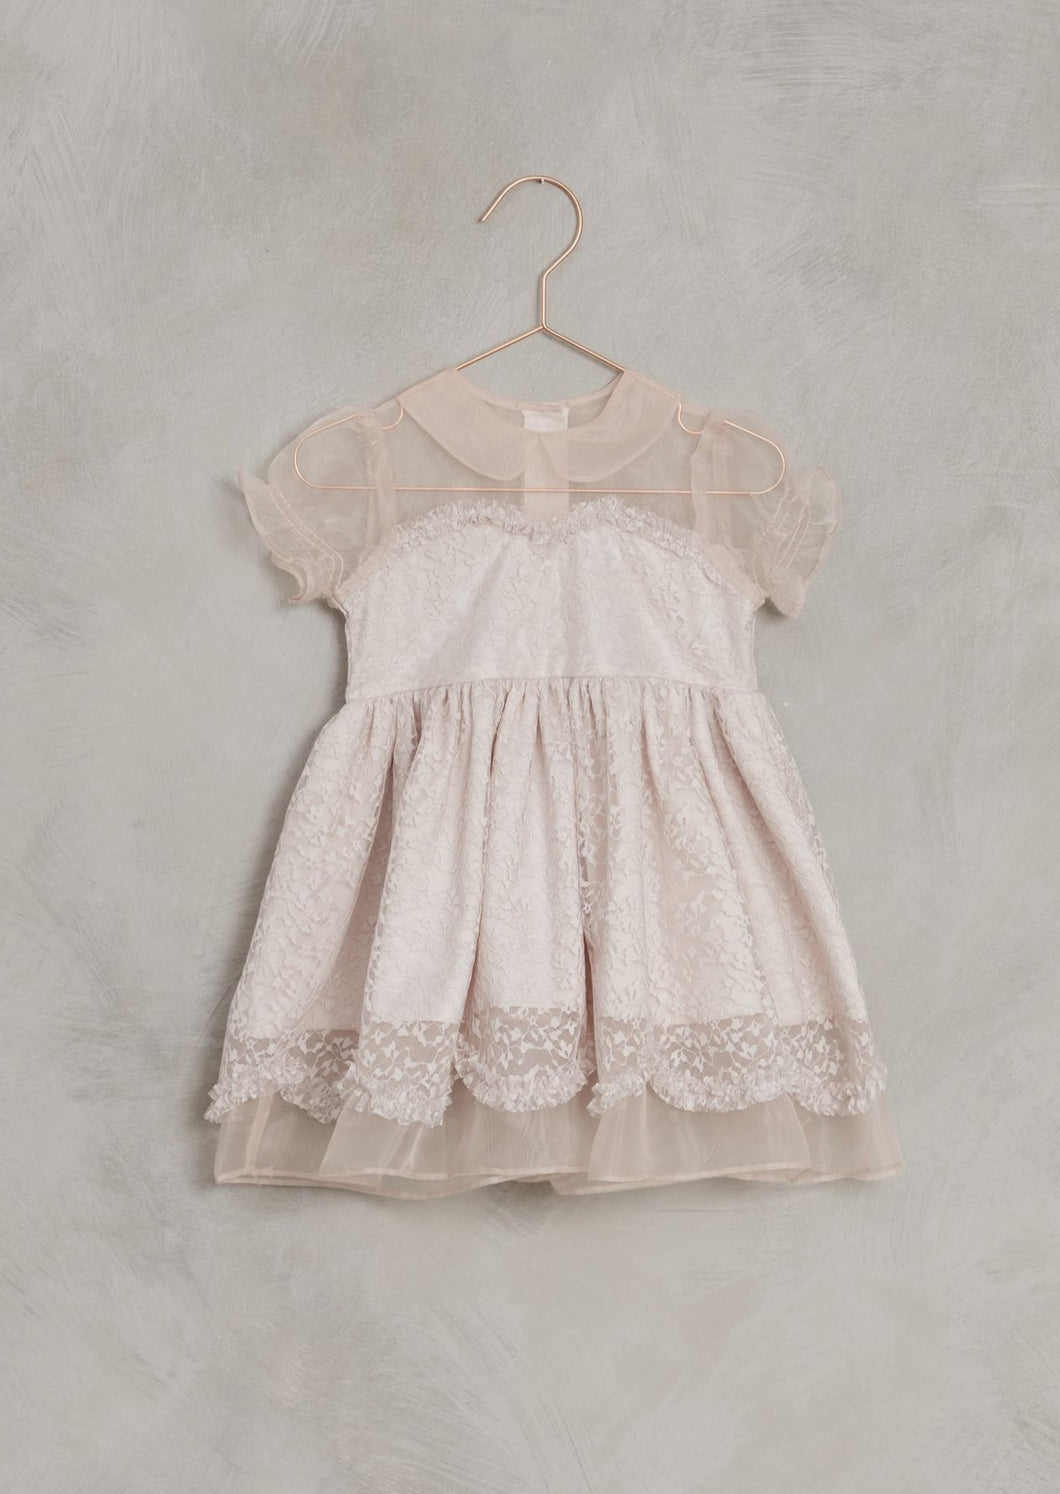 Noralee Gidgette Dress in Powder Pink